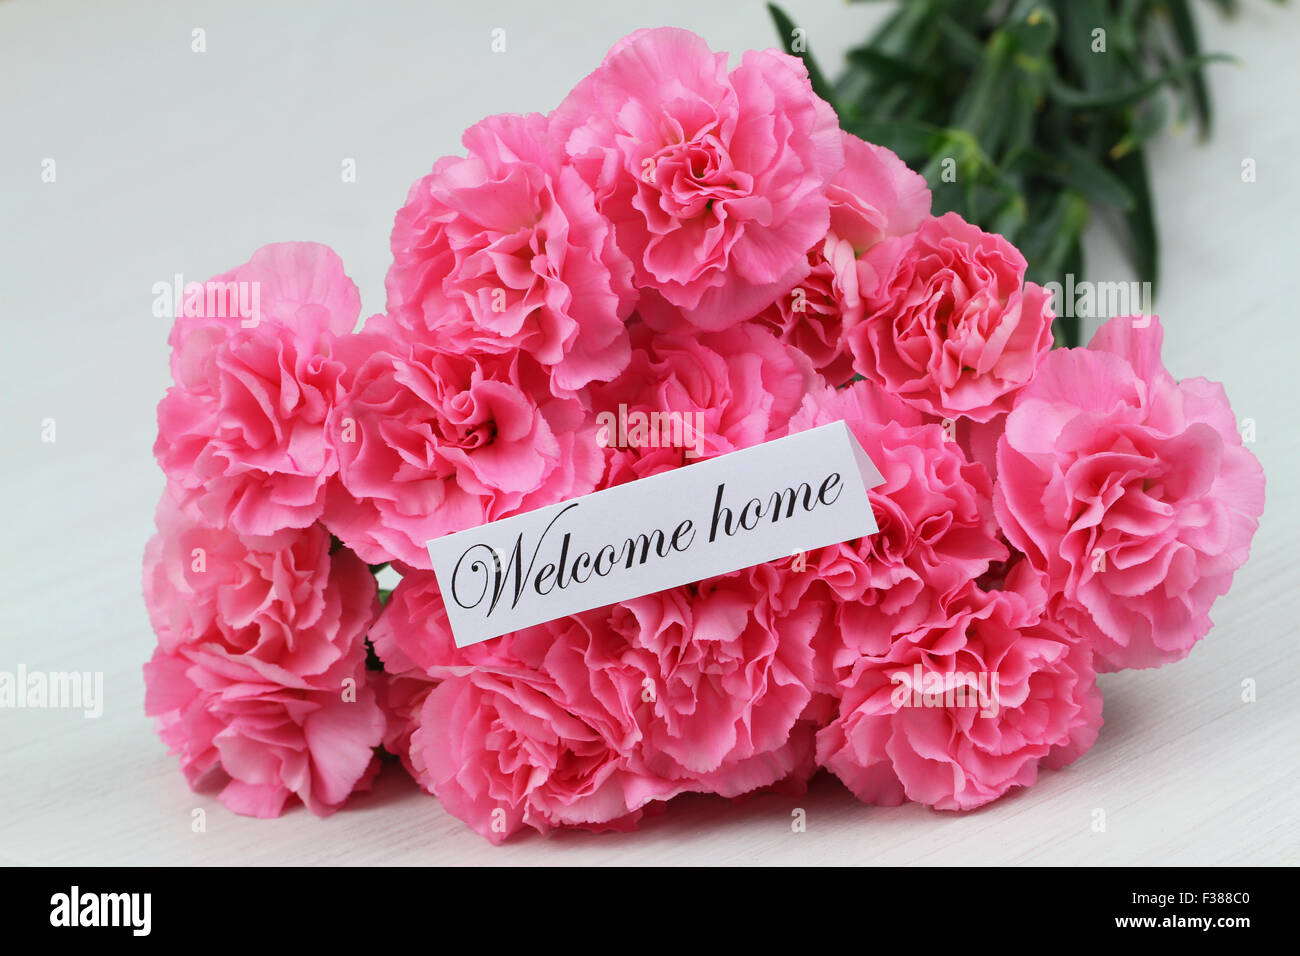 Welcome home card with pink carnation flower bouquet Stock Photo ...